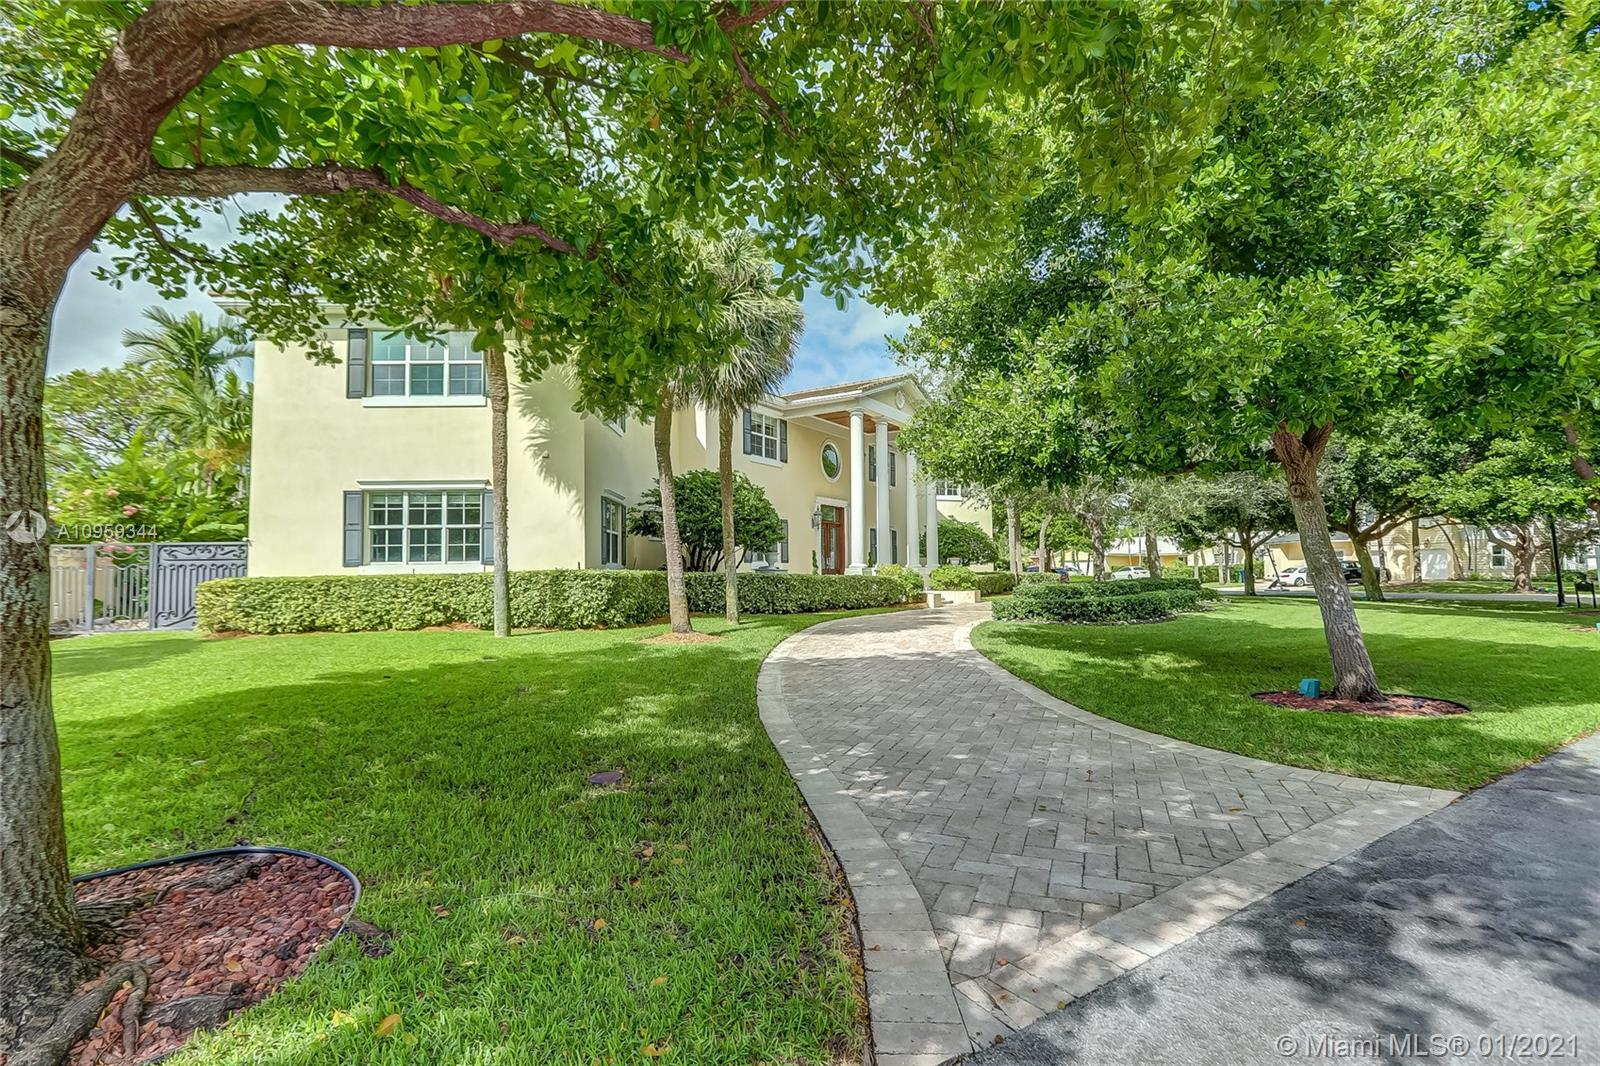 Highly desirable Sunrise Intracoastal gated community, top rated Bayview School District.  Walk to beach, Galleria Mall, entertainment & restaurants.  This versatile large residence sits on a corner lot, built in 2007, impact glass, great for entertaining w/huge covered marble terrace with summer kitchen: wet bar, grill, storage, fridge. Generator. 1st level: Tall ceiling foyer entry, large open kitchen with walk in pantry, family room, 2 half baths, 1 bedroom with ensuite bath, room with 3 individual office stations (could be 5th Bedroom),  game room with pool table, private formal dining room, piano room.  2nd level: Master Suite w/oversize sitting area/living room (could be split into 6th bedroom),  media room/entertainment complete with full bar, icemaker, dishwasher and refrigerator.